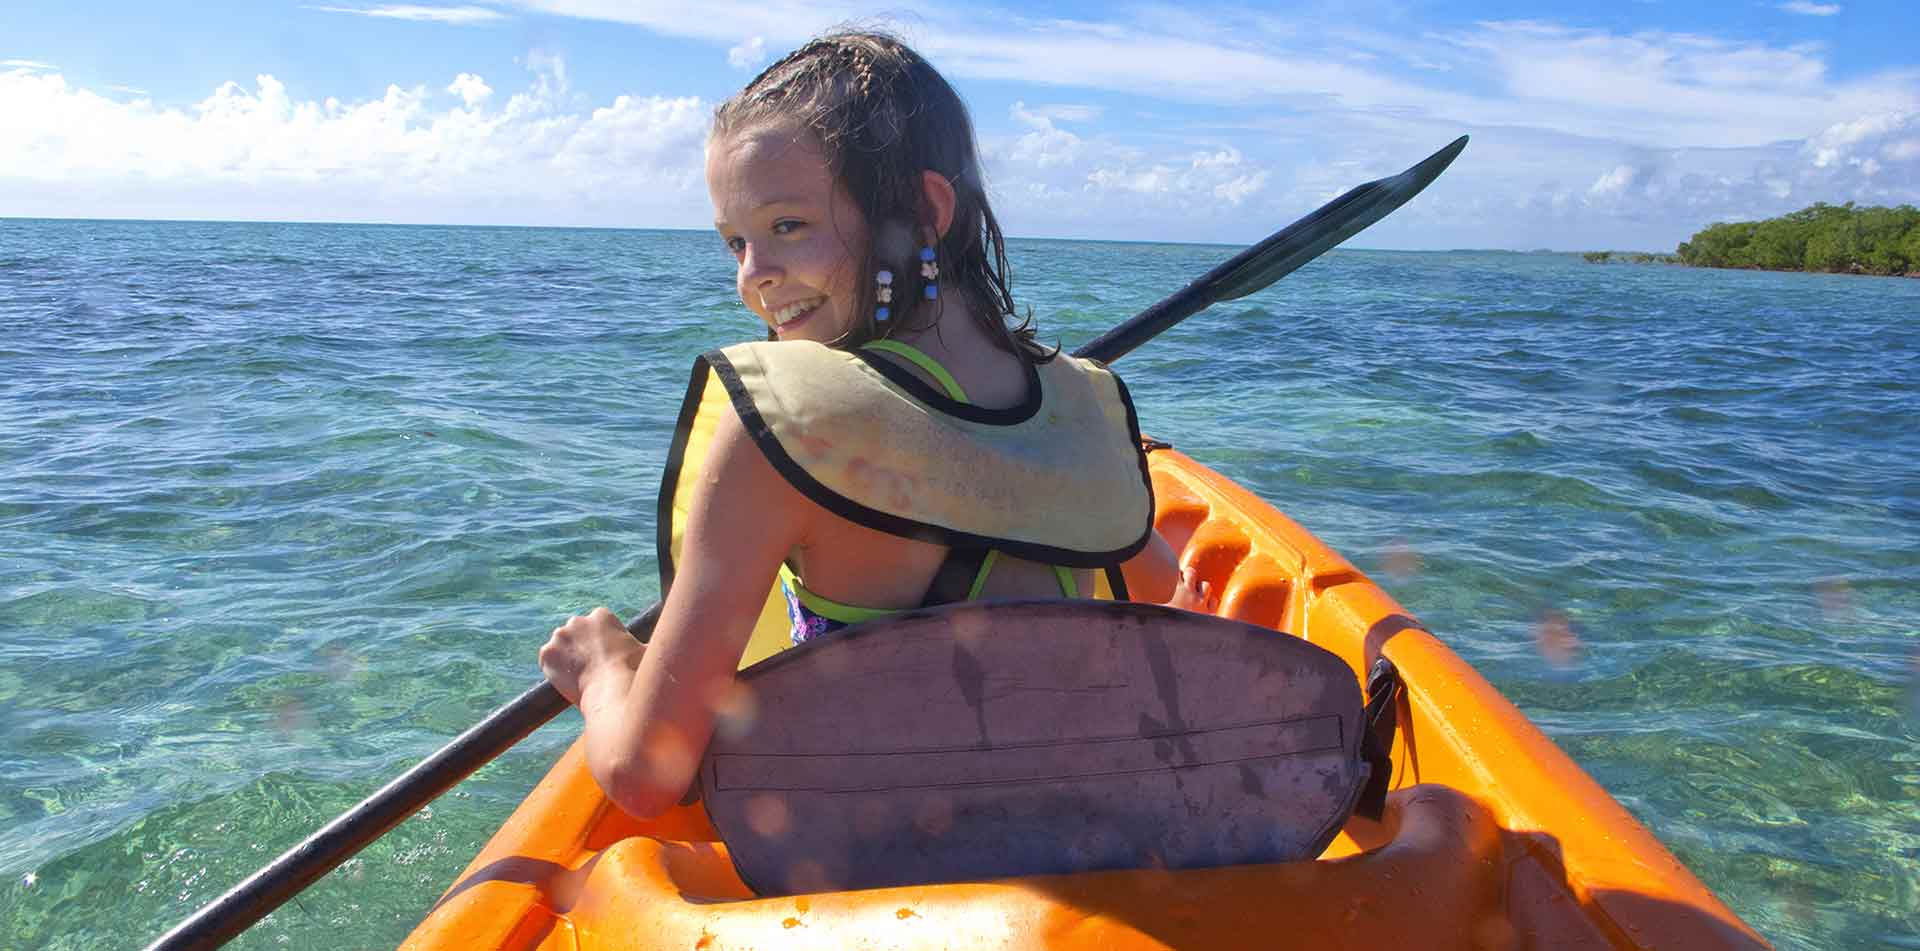 Central America Panama girl kayaking on blue coastal waters - luxury vacation destinations